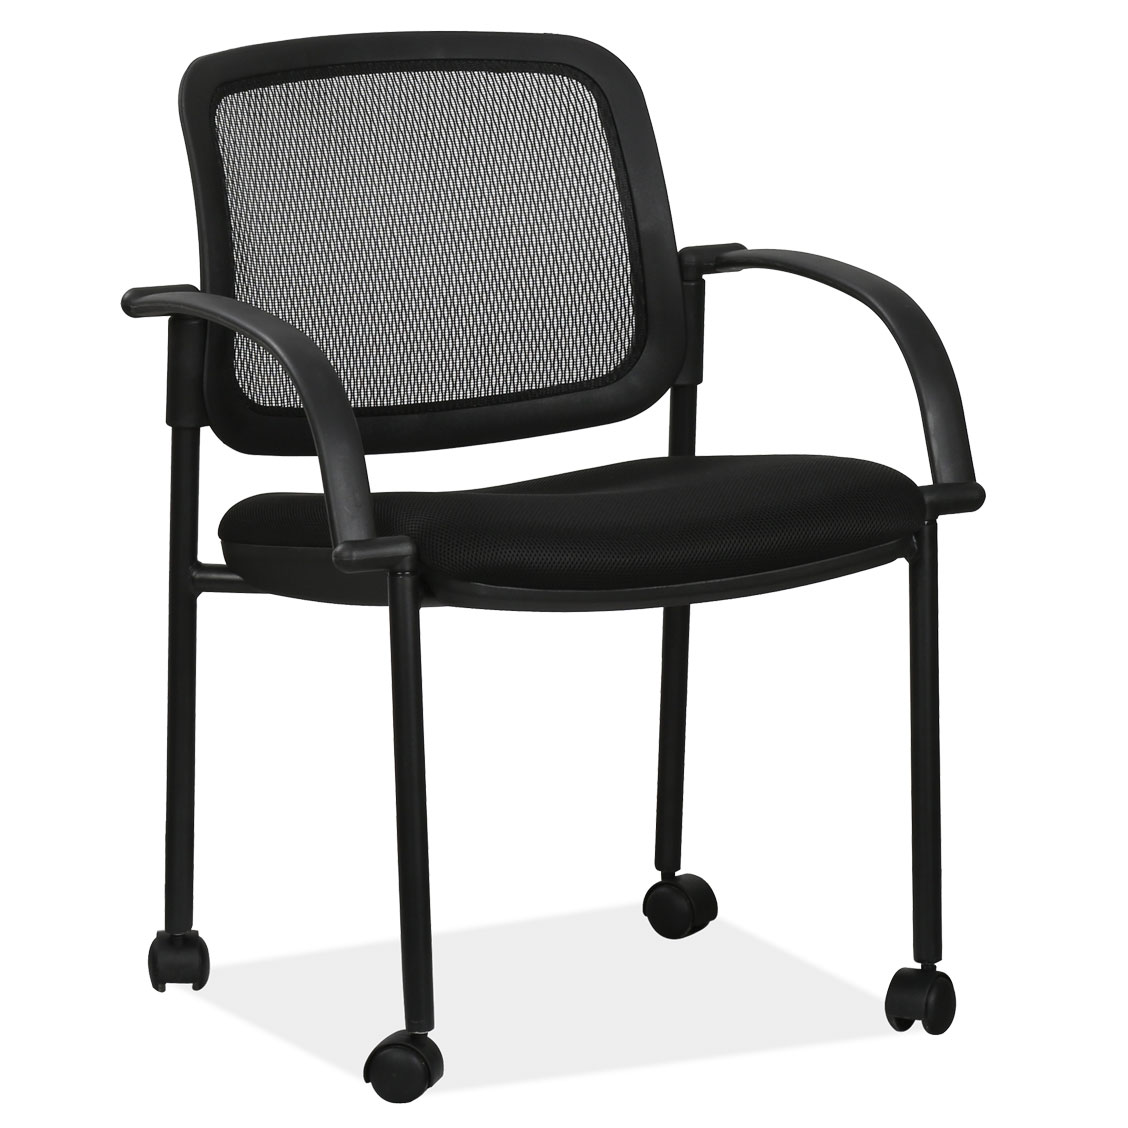 OfficeSource Encline Collection Mesh Back Side Chair with Casters